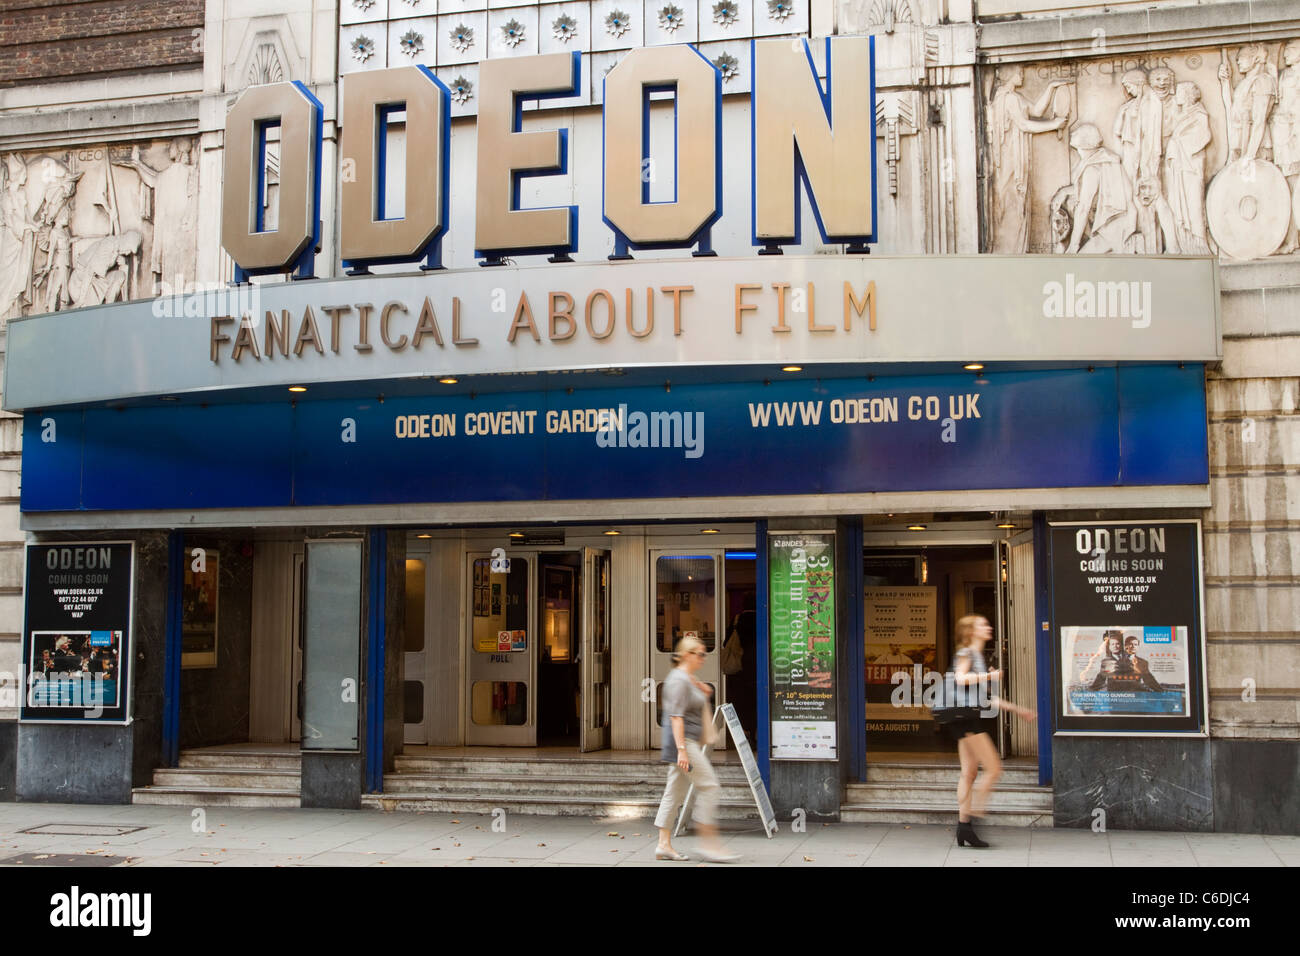 Odeon cinema, Covent Garden, London, England, UK Stock Photo